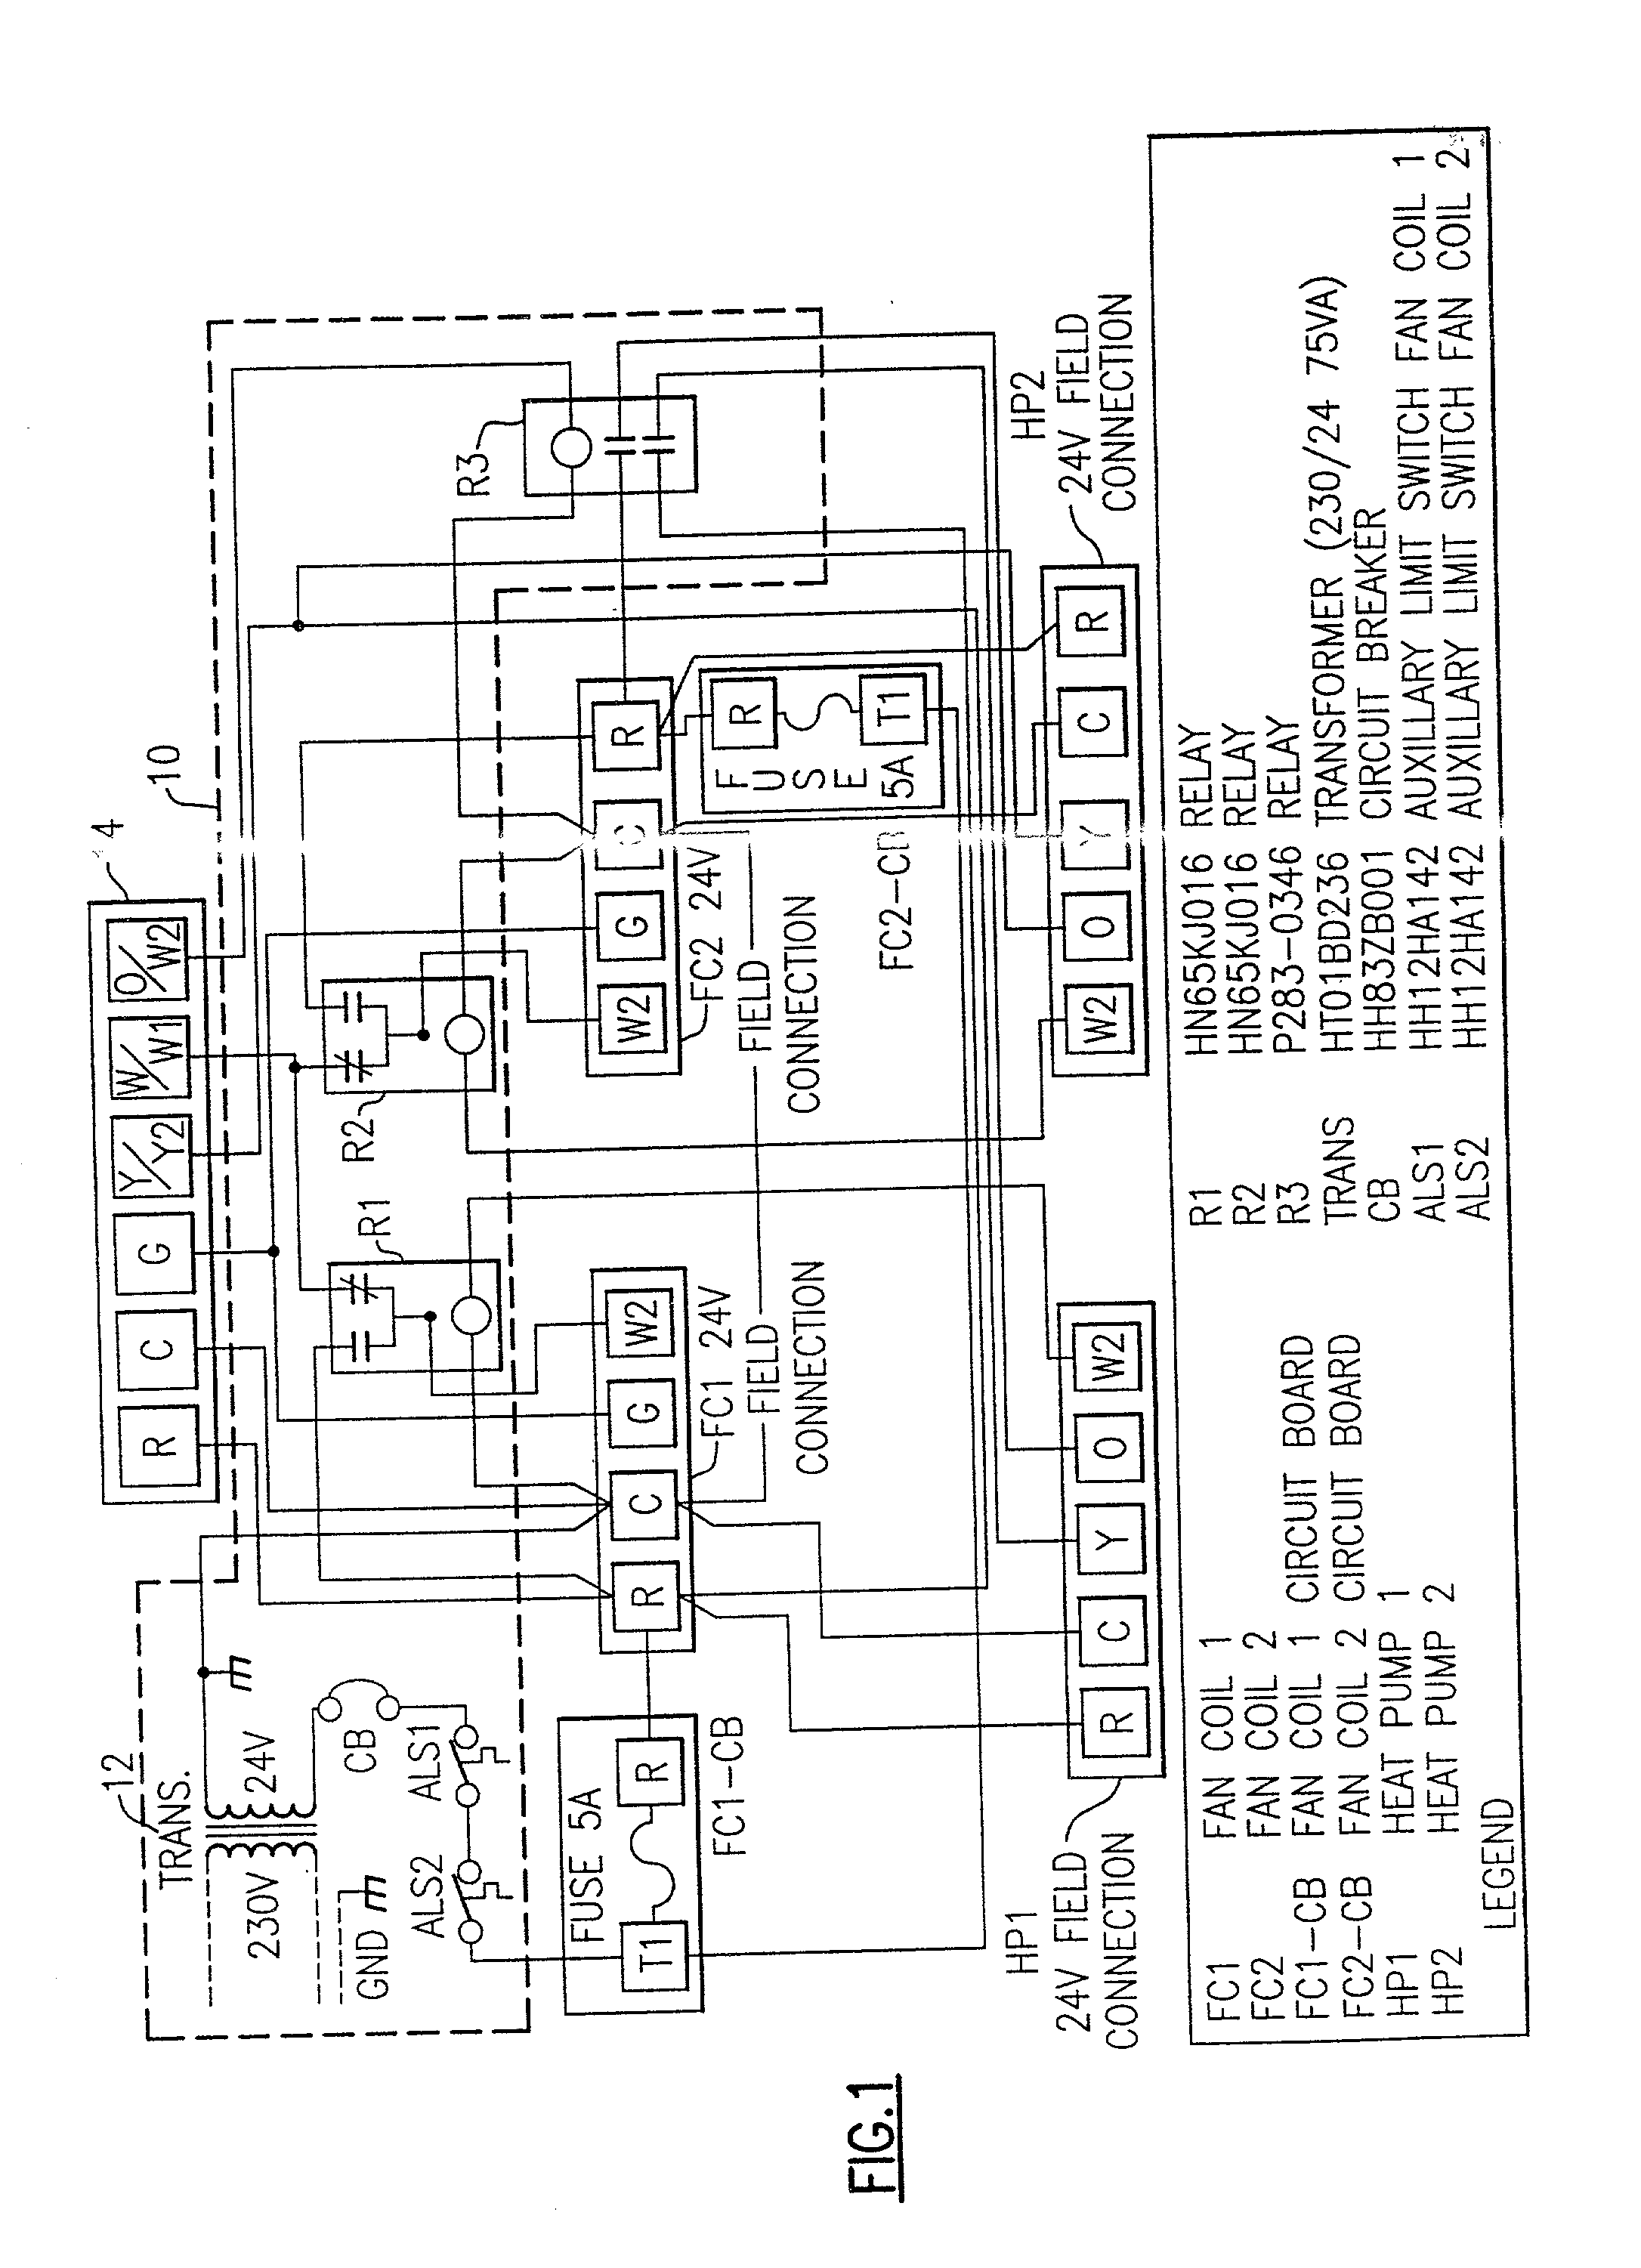 Interface Box Wiring Diagram Together With Fan Switch Wiring Diagram